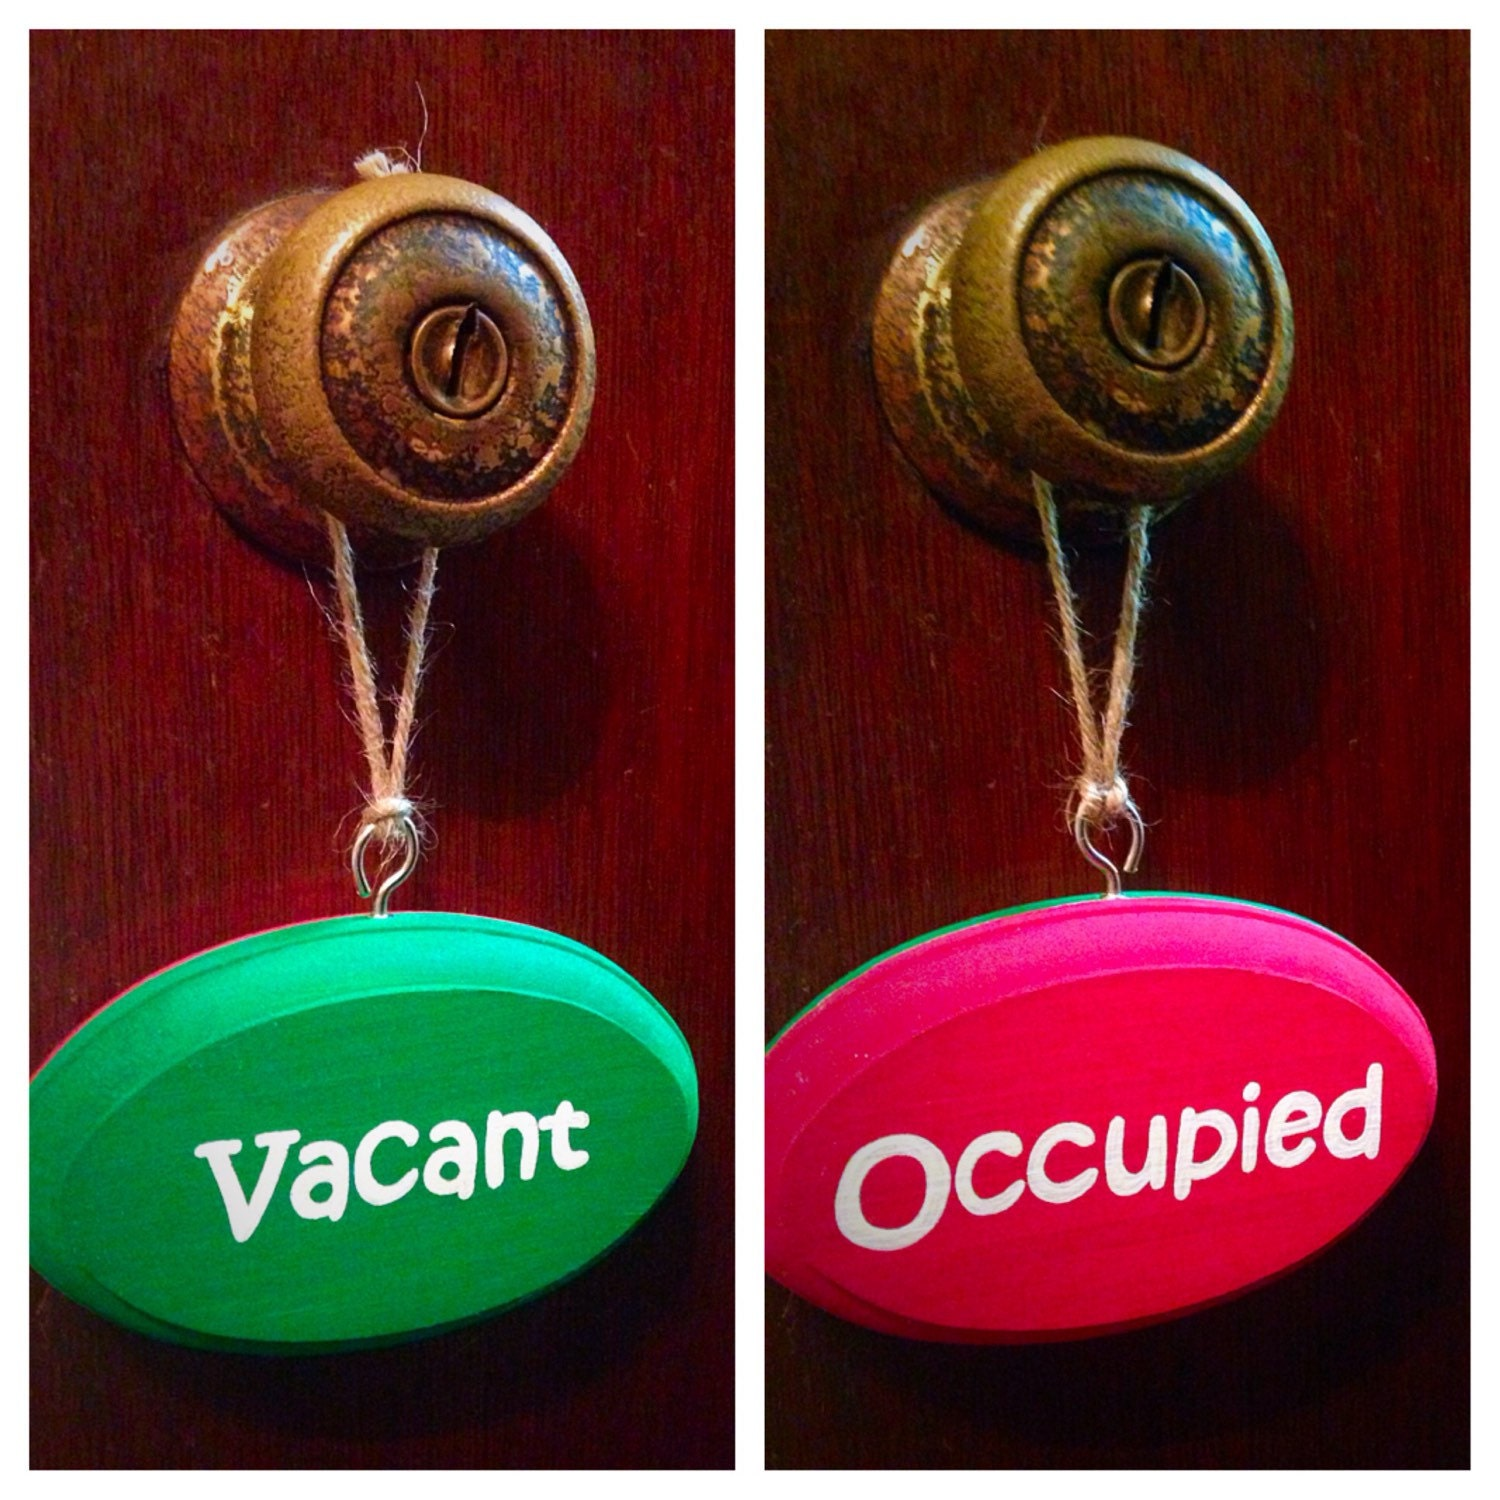 Vacant occupied double sided bathroom sign red green kids for Bathroom occupied sign